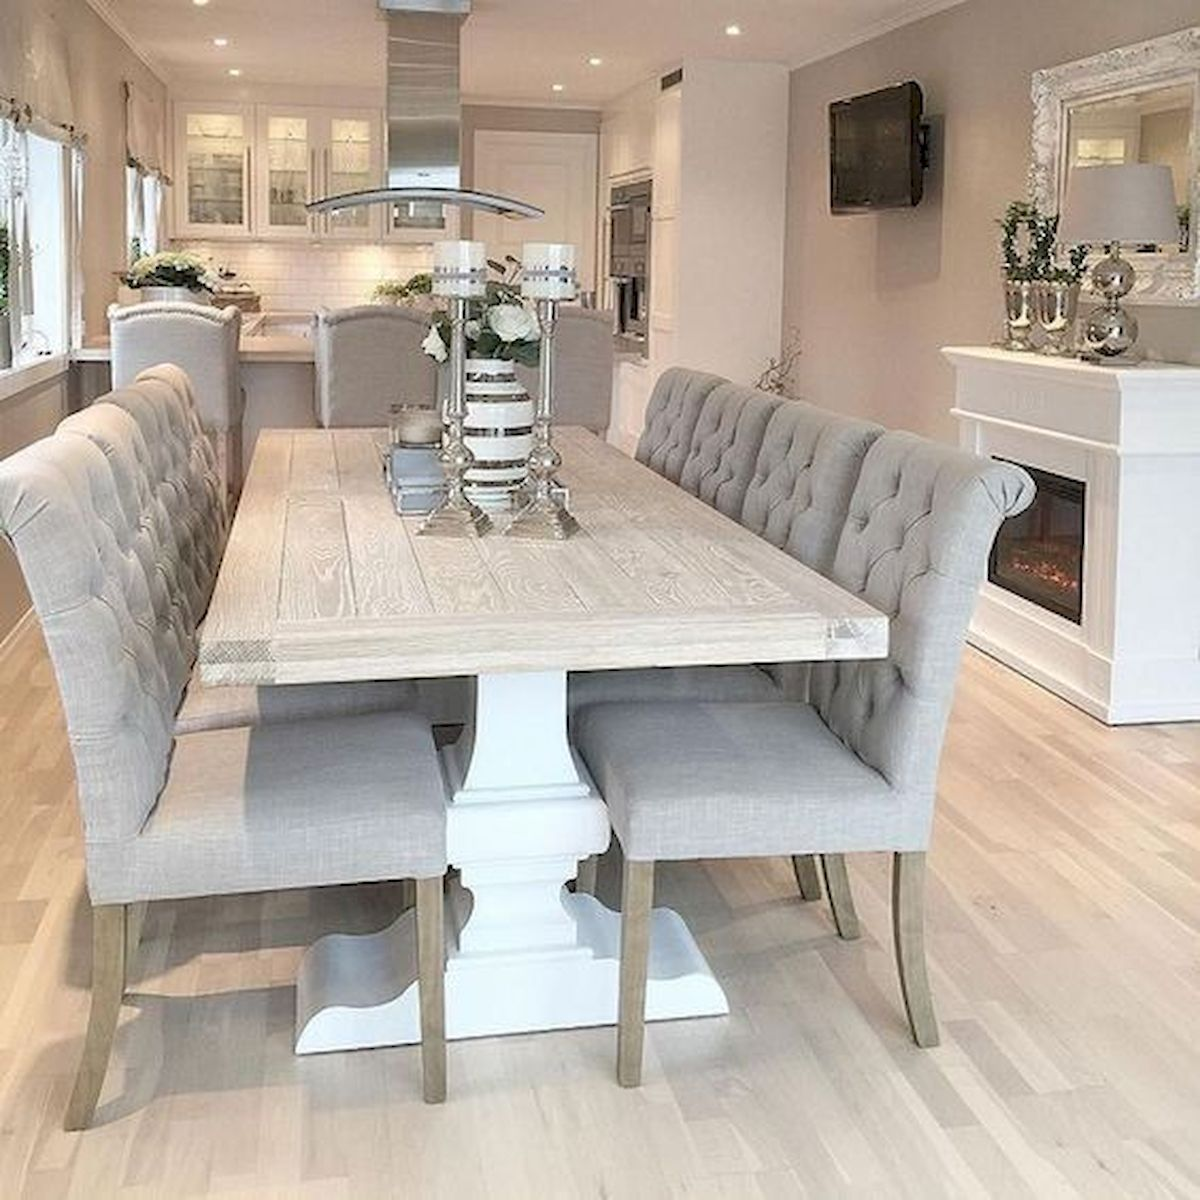 50 Nice Diy Furniture Projects For Dining Rooms Tables Design Ideas Small Living Room Furniture Living Room Furniture Arrangement Dining Room Table Decor